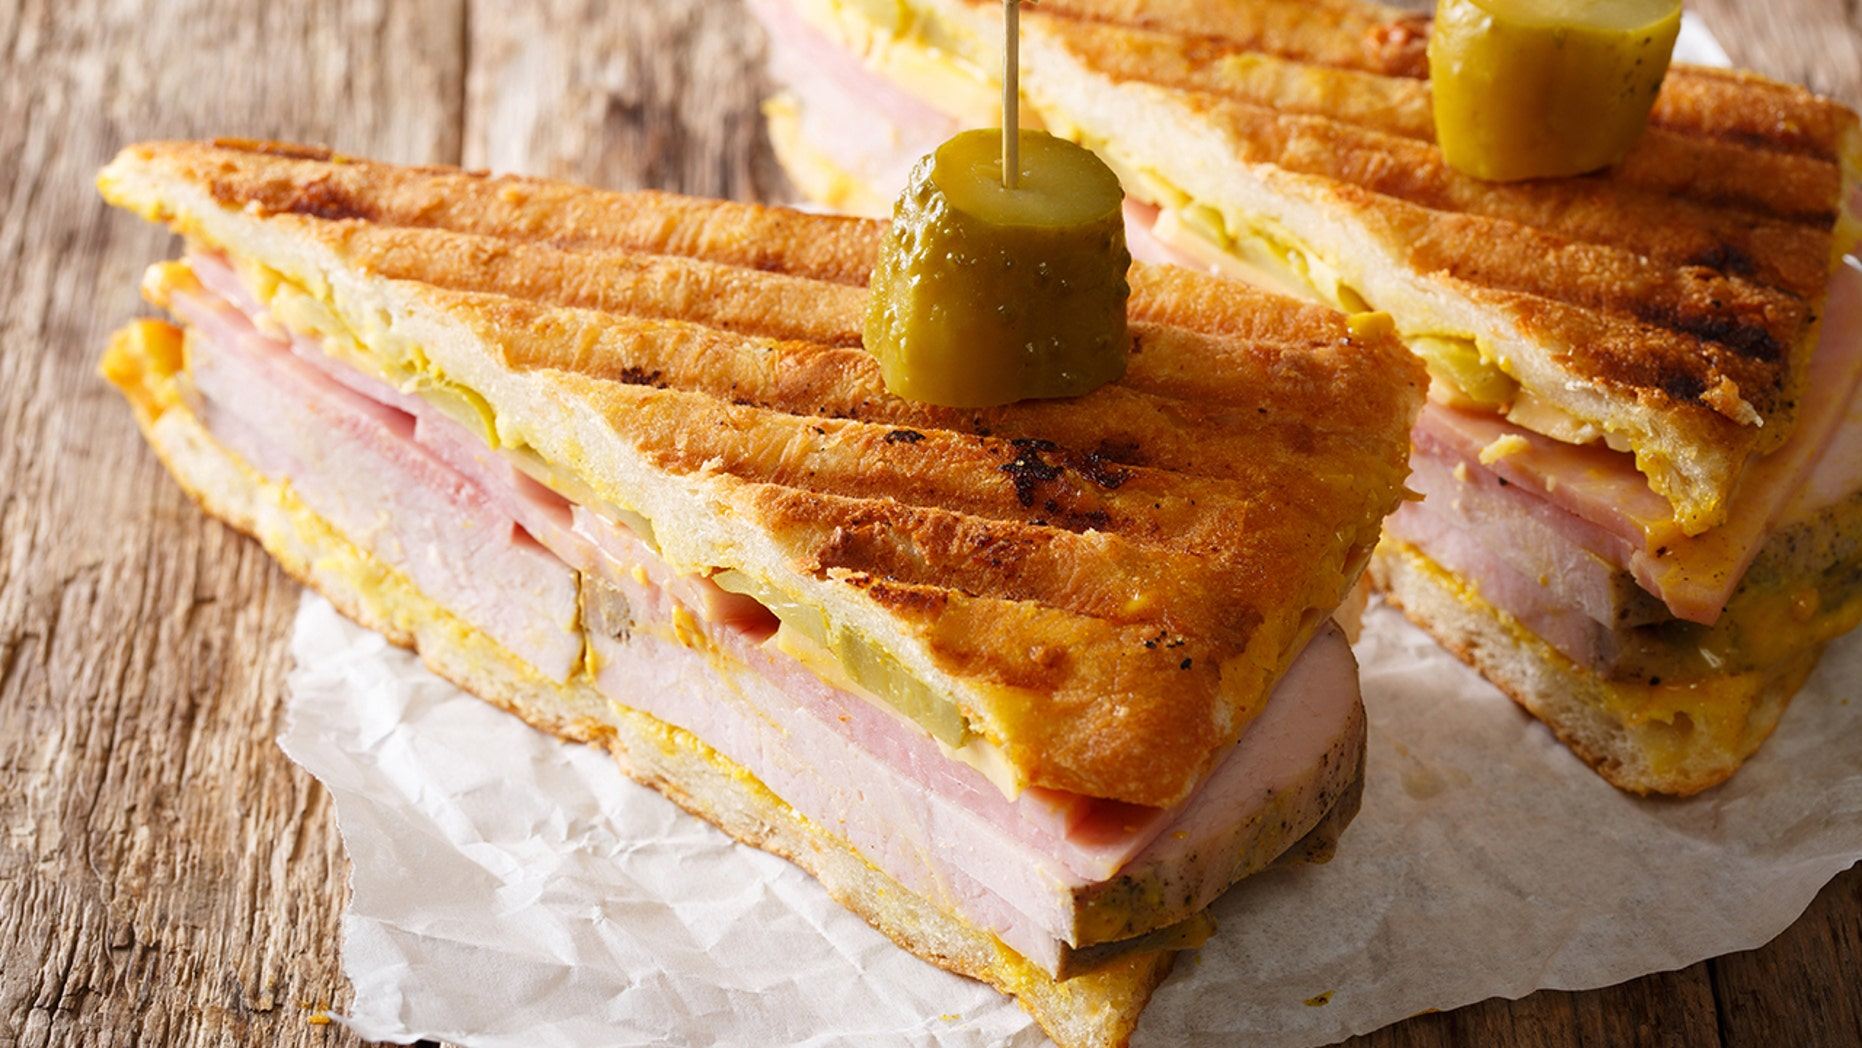 Floridians disagree with Chef Carl Ruiz, who claims the best Cubano is in New Jersey.